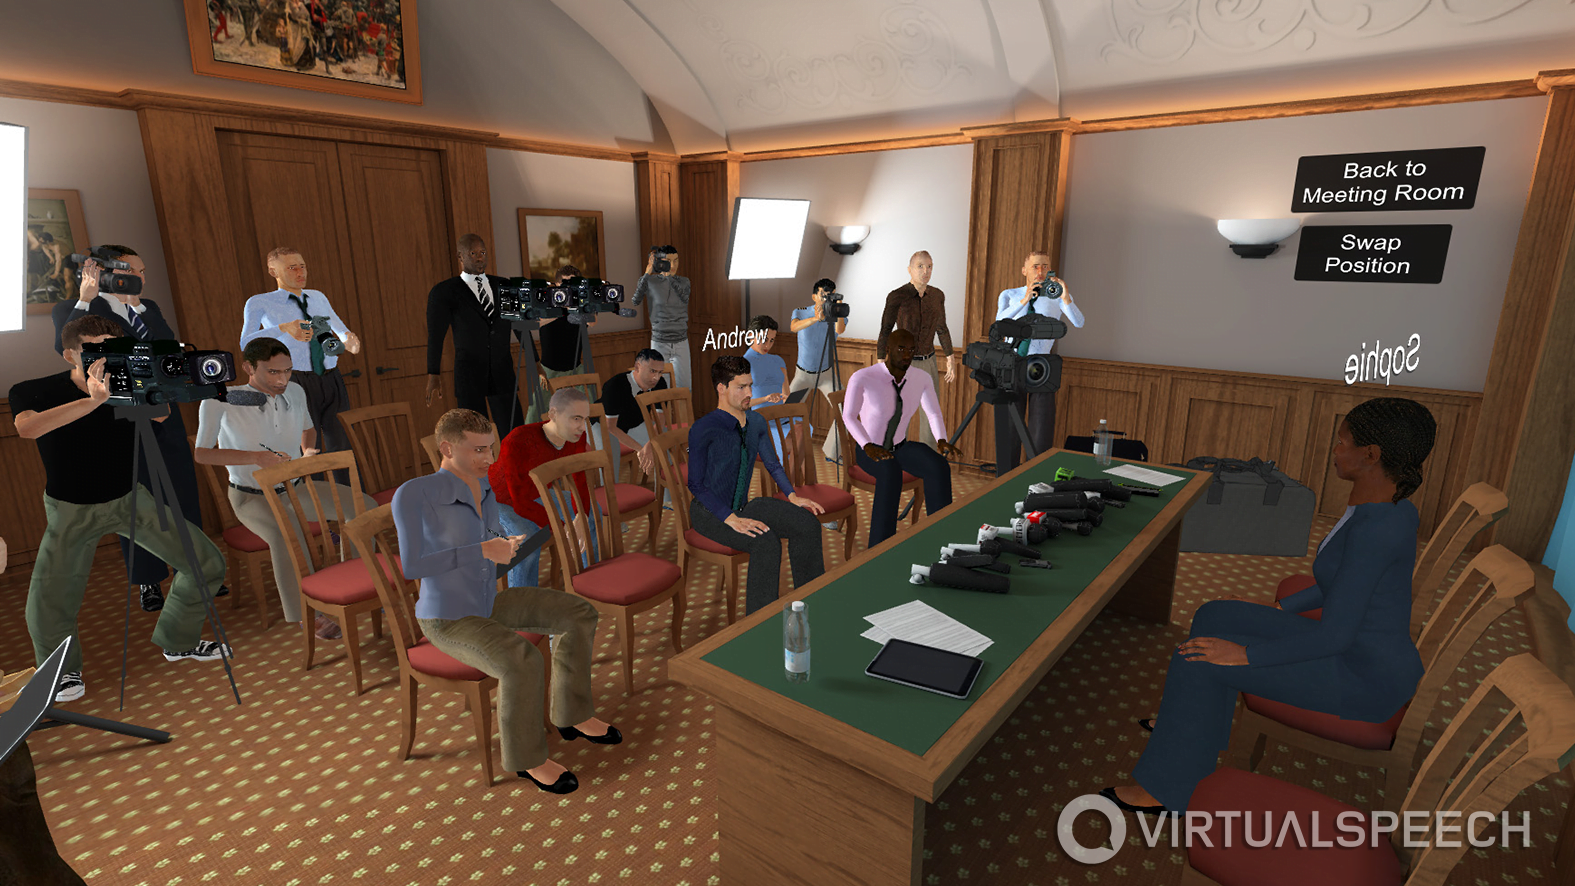 VirtualSpeech Enhances E-Learning Courses With Live Training in Virtual Reality